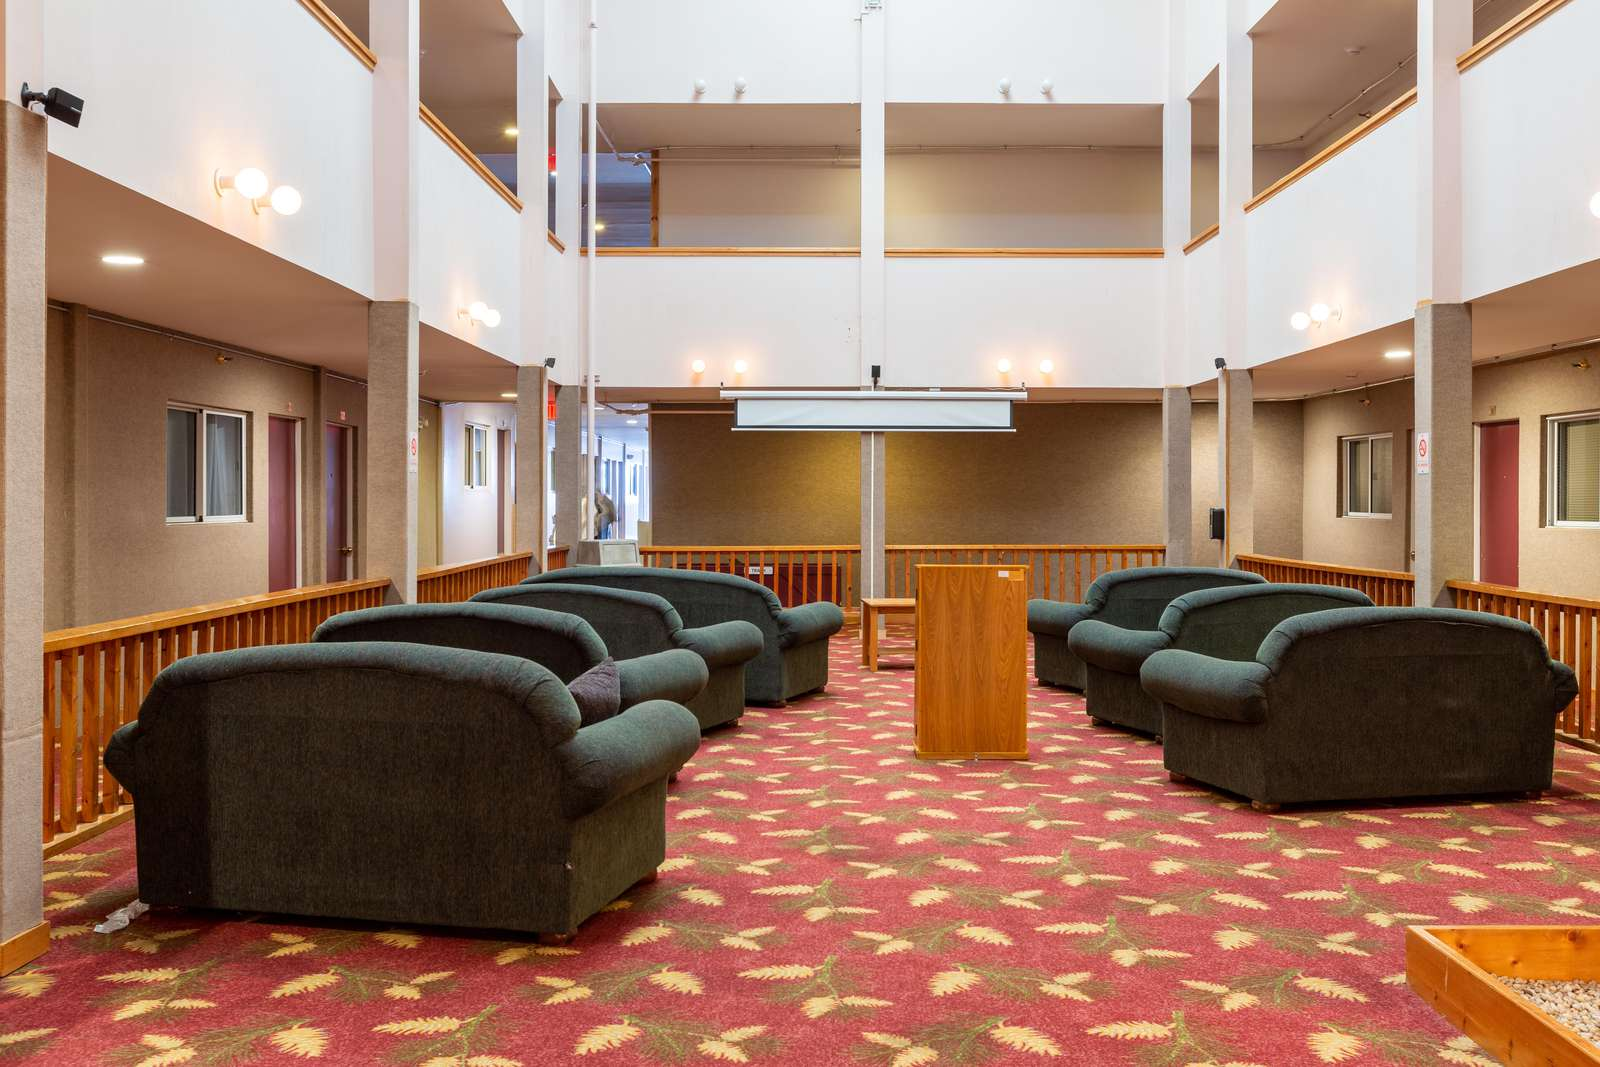 Common Area - Projector - Enjoy Free movies or meet up